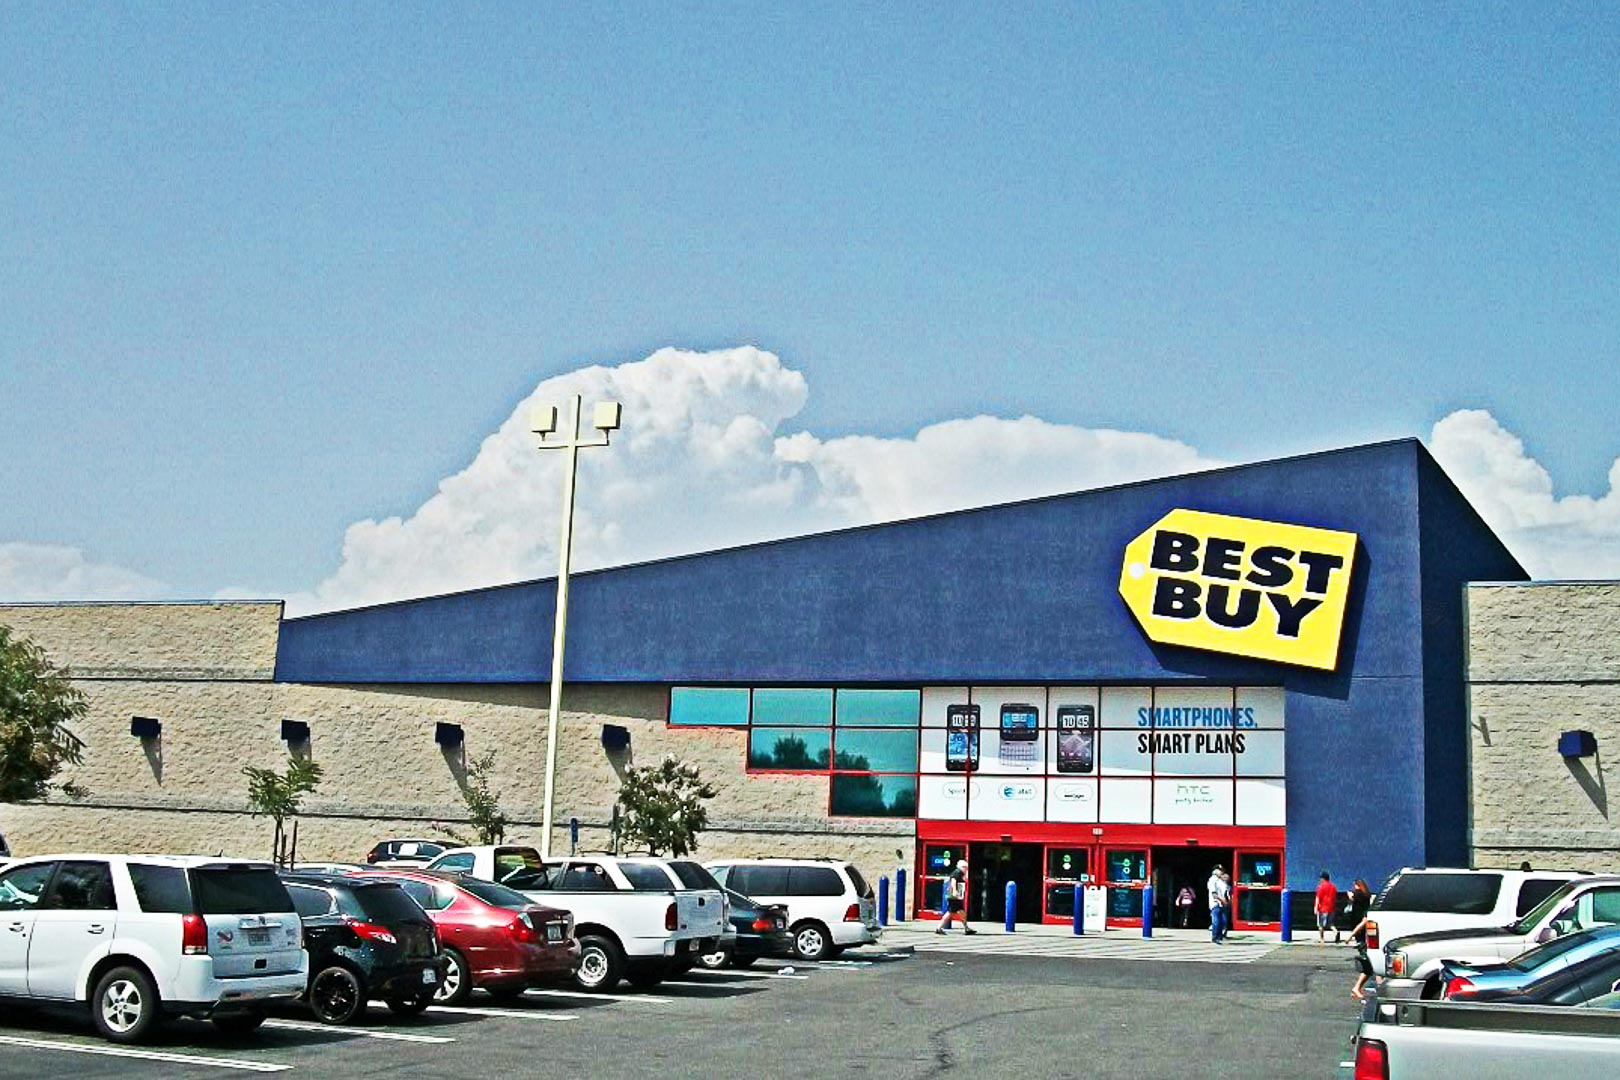 Best Buy, San Bernardino, CA